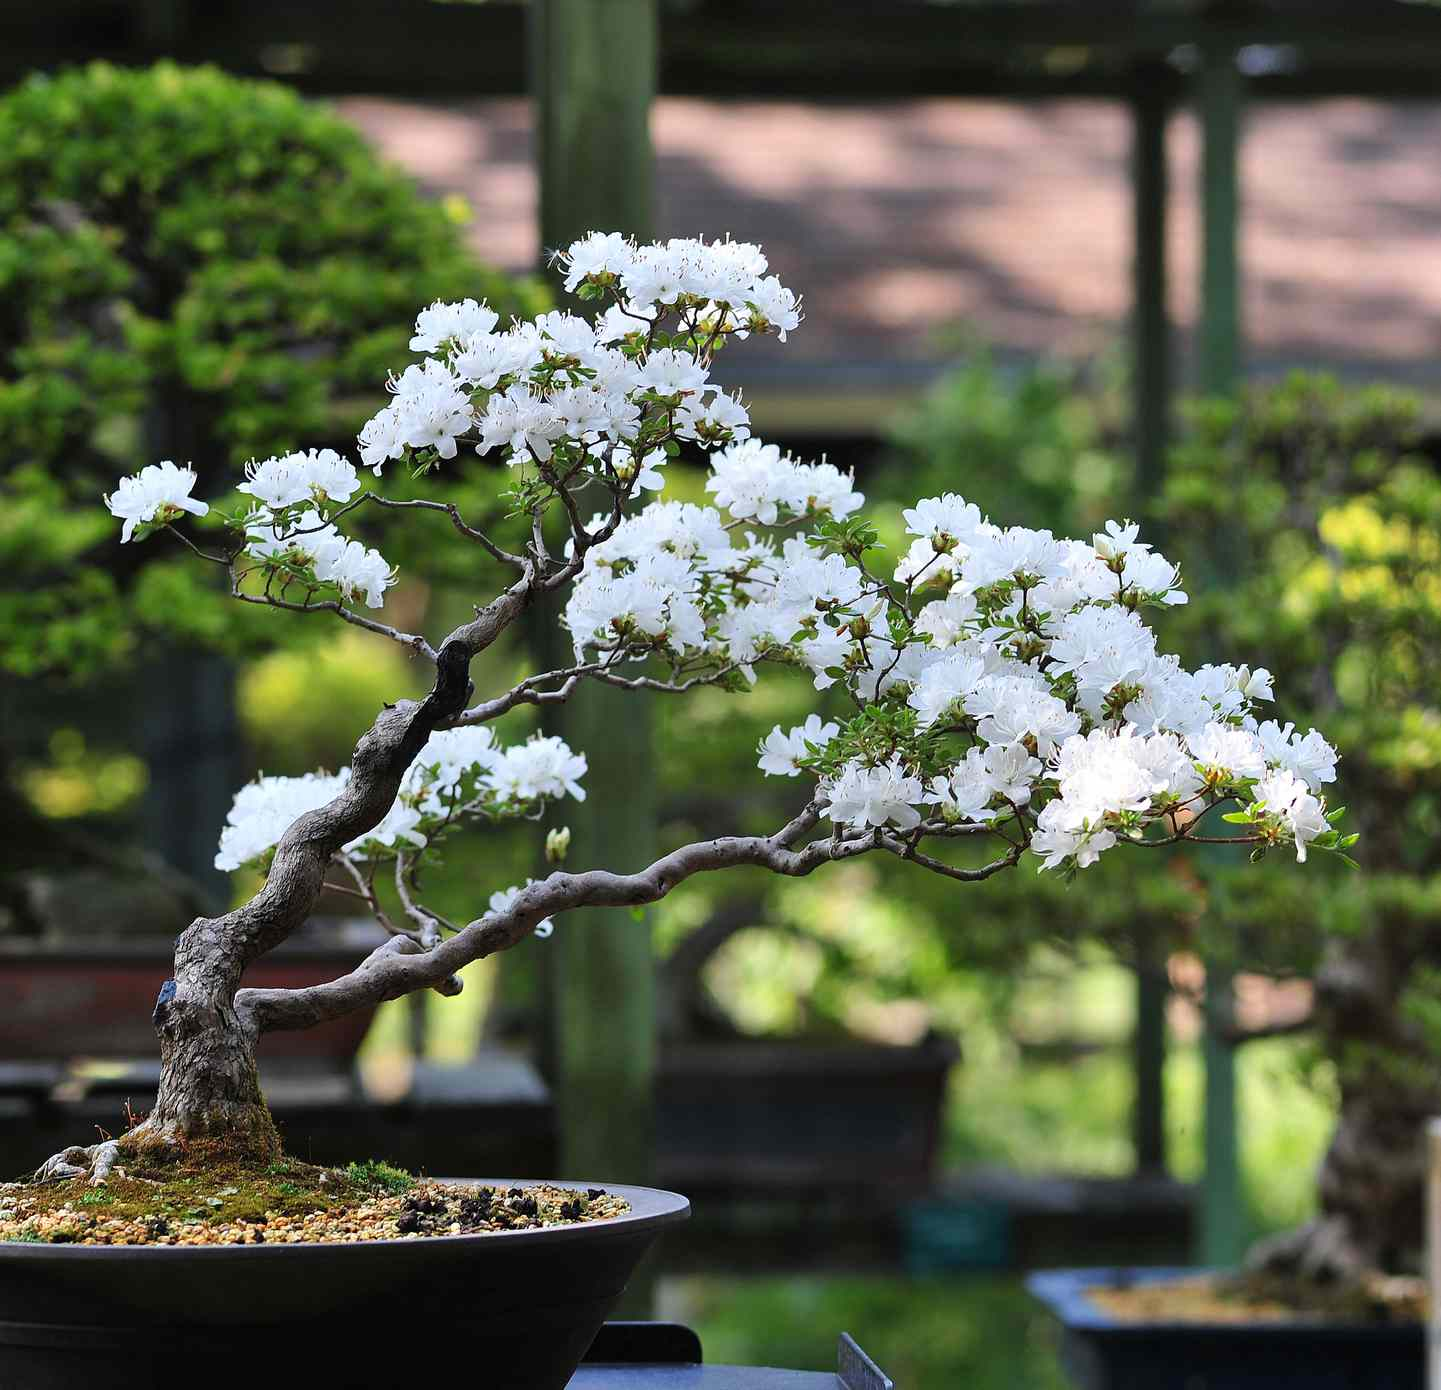 A cherry bonsai tree with white cherry blossoms sits in front of green trees in thebackground.